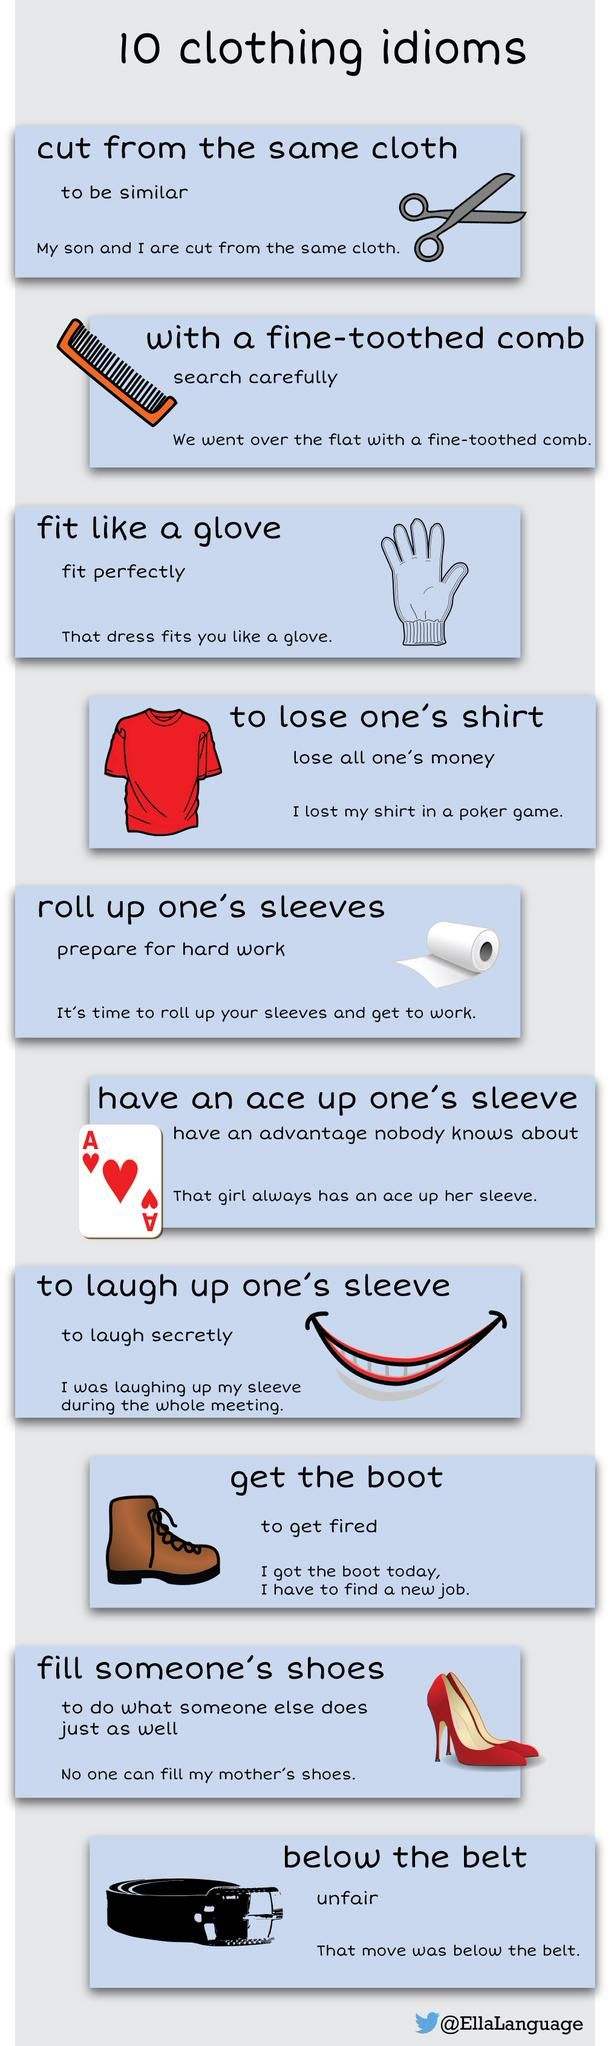 """10 Clothing Idioms"" (#INFOGRAPHIC)"